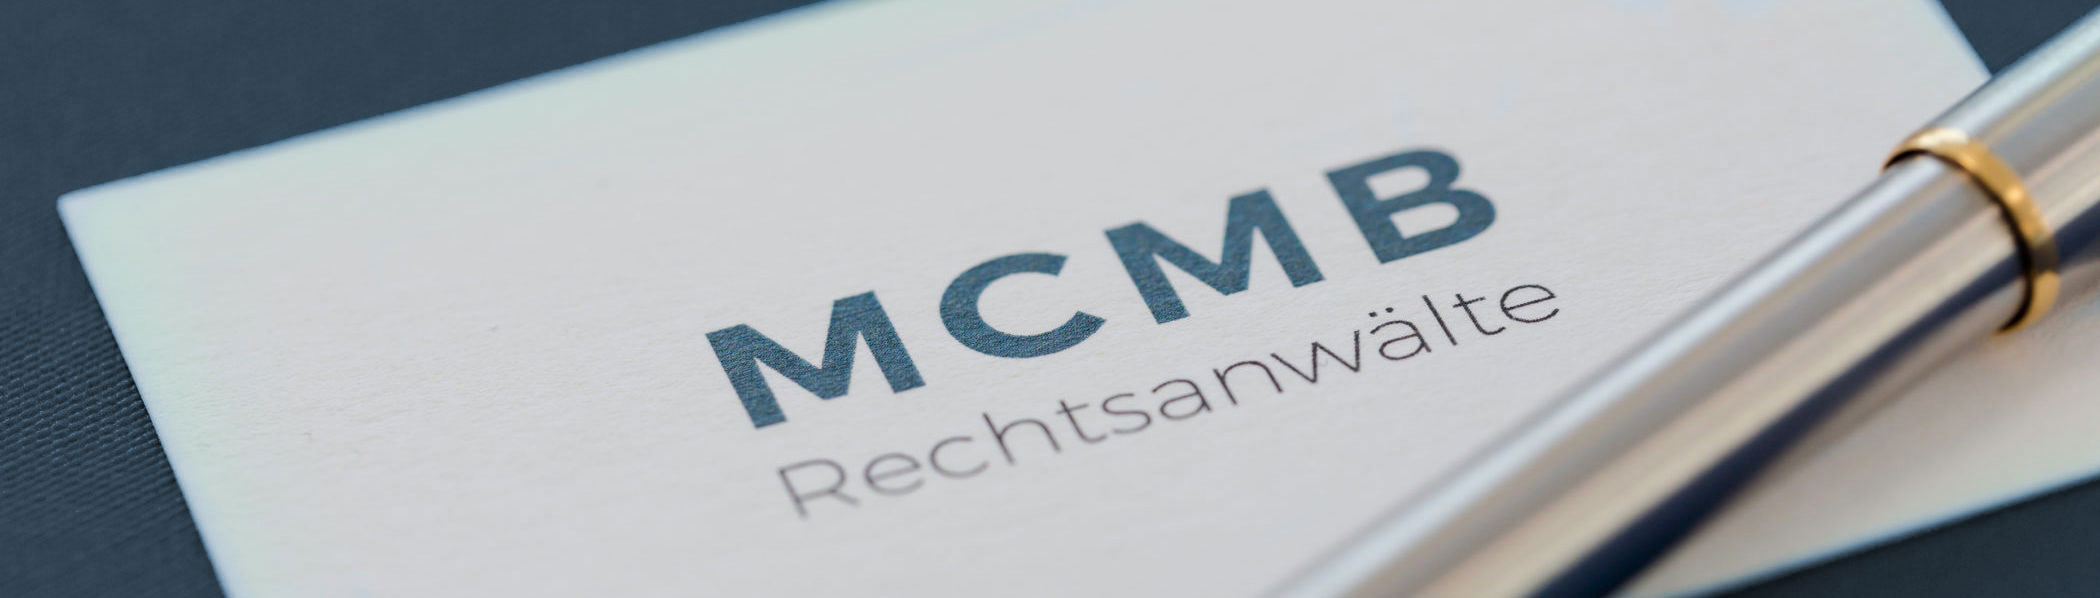 MCMB Rechtsanwälte